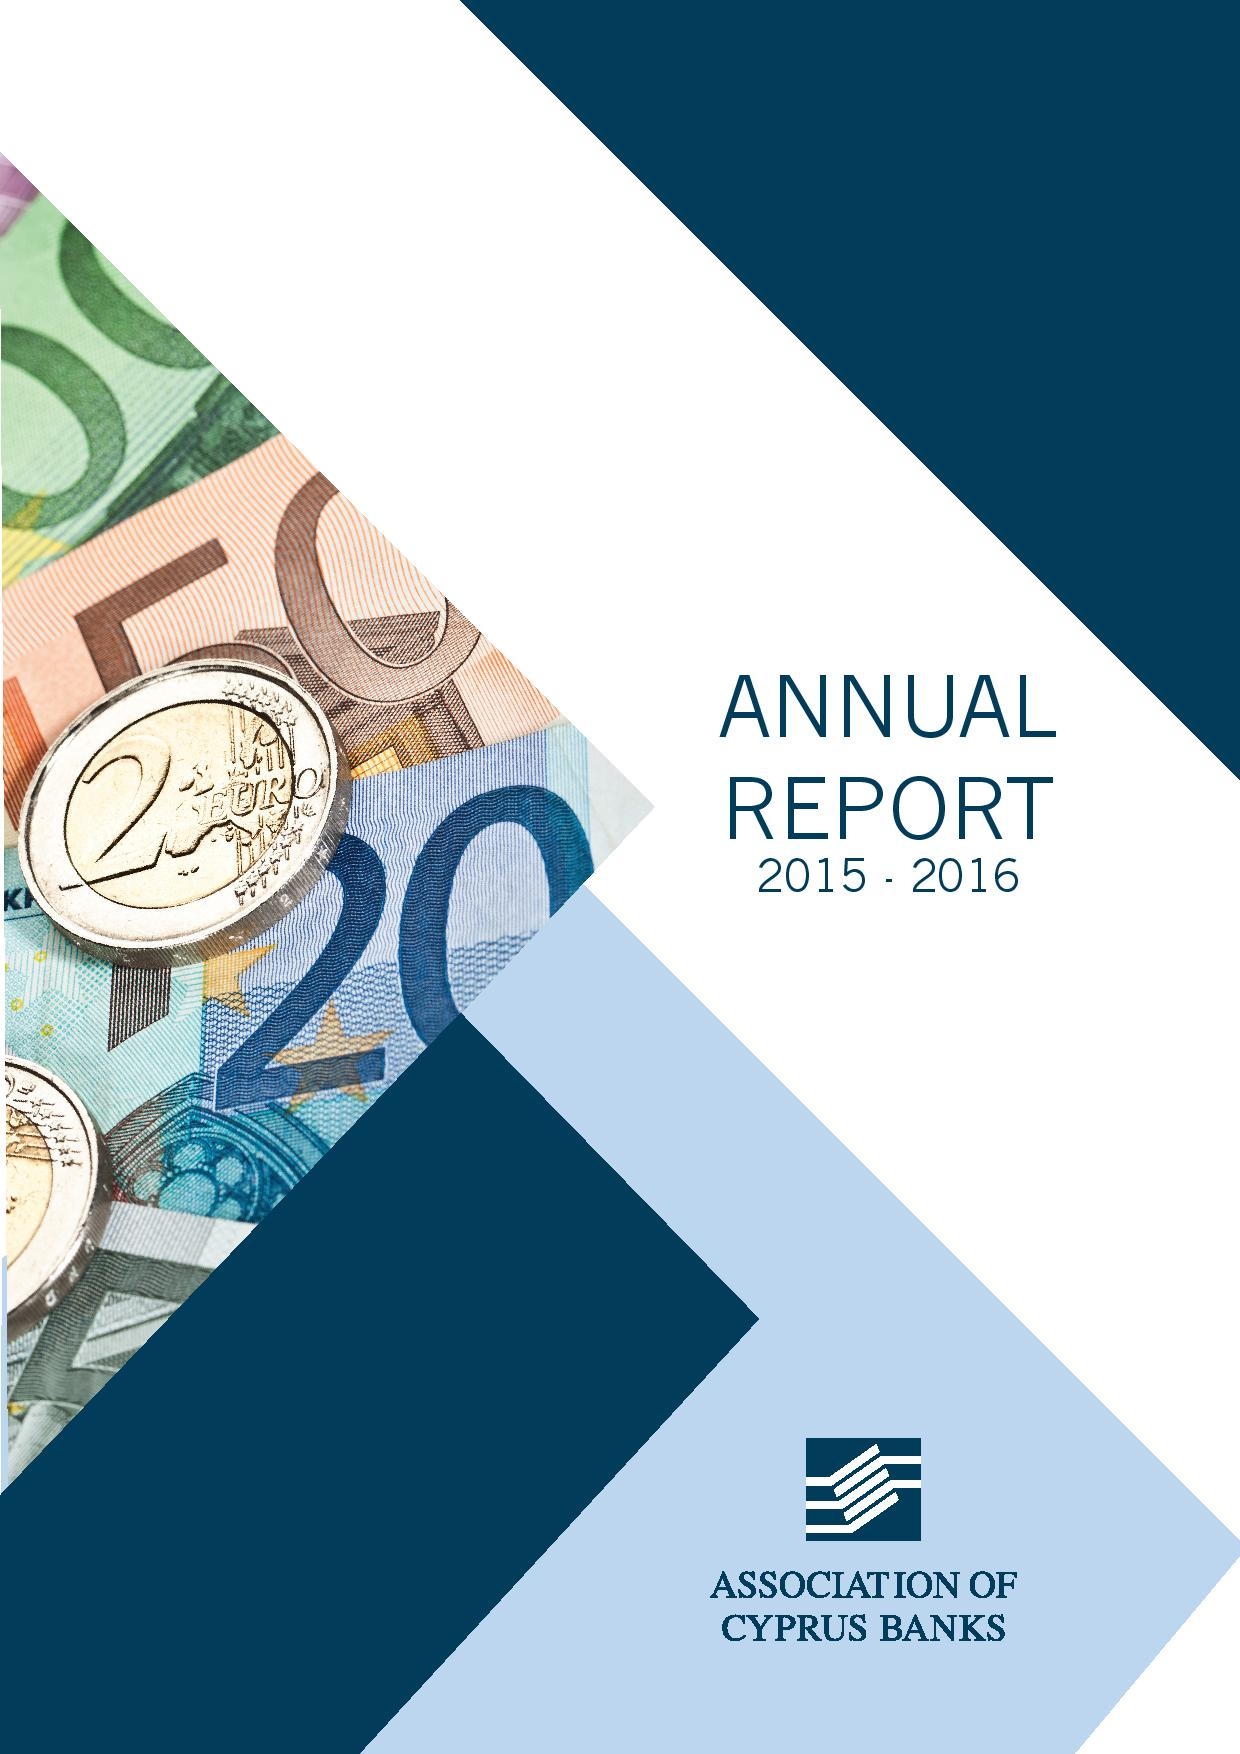 Association of Cyprus Banks Annual Report 2015/2016